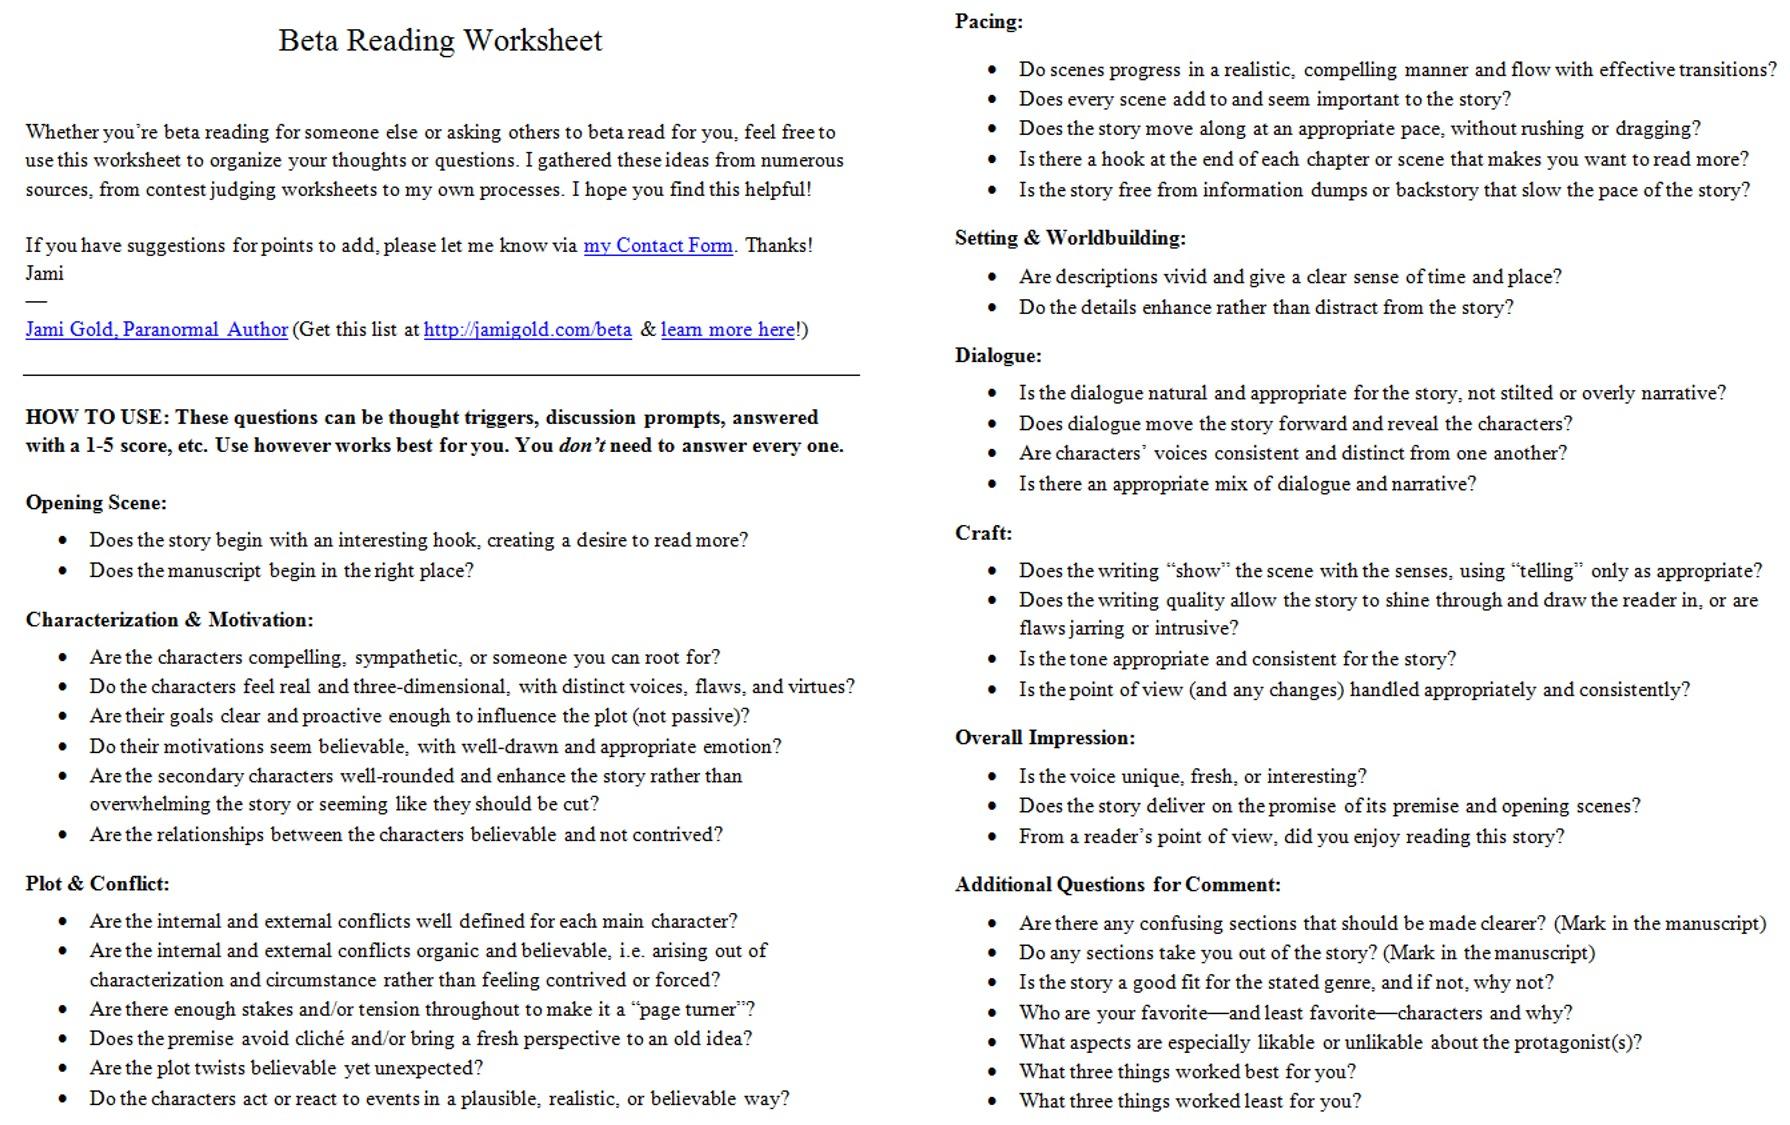 Weirdmailus  Unique Worksheets For Writers  Jami Gold Paranormal Author With Heavenly Screen Shot Of The Twopage Beta Reading Worksheet With Breathtaking Convert Cm To Mm Worksheet Also Odds And Evens Worksheets In Addition Subtraction Worksheets For Third Grade And Data Handling Worksheets Ks As Well As Superkids Math Worksheets Multiplication Additionally Ap Bio Worksheets From Jamigoldcom With Weirdmailus  Heavenly Worksheets For Writers  Jami Gold Paranormal Author With Breathtaking Screen Shot Of The Twopage Beta Reading Worksheet And Unique Convert Cm To Mm Worksheet Also Odds And Evens Worksheets In Addition Subtraction Worksheets For Third Grade From Jamigoldcom